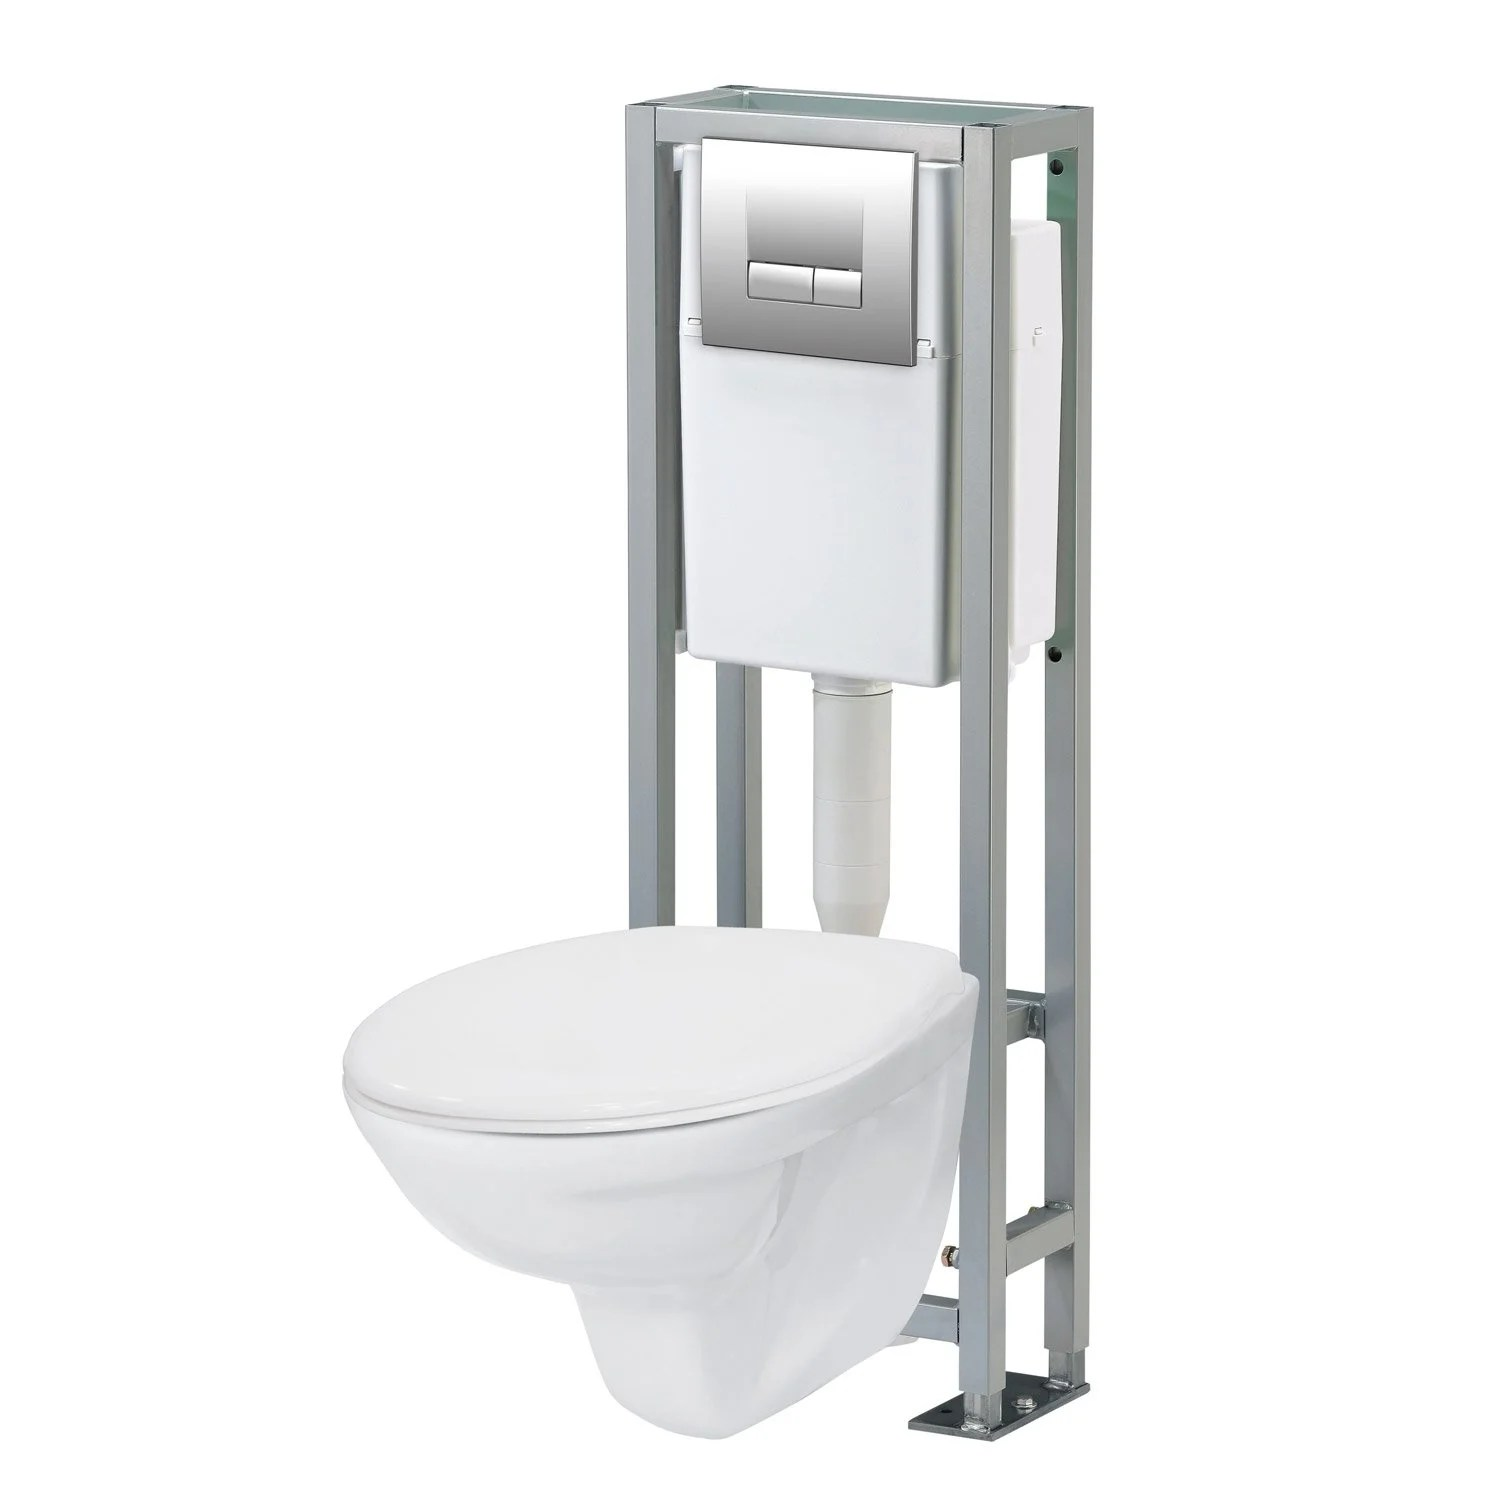 Wc Lavabo Pack Wc Suspendu Bti Sol Siamp Actua With Wc Avec Lavabo